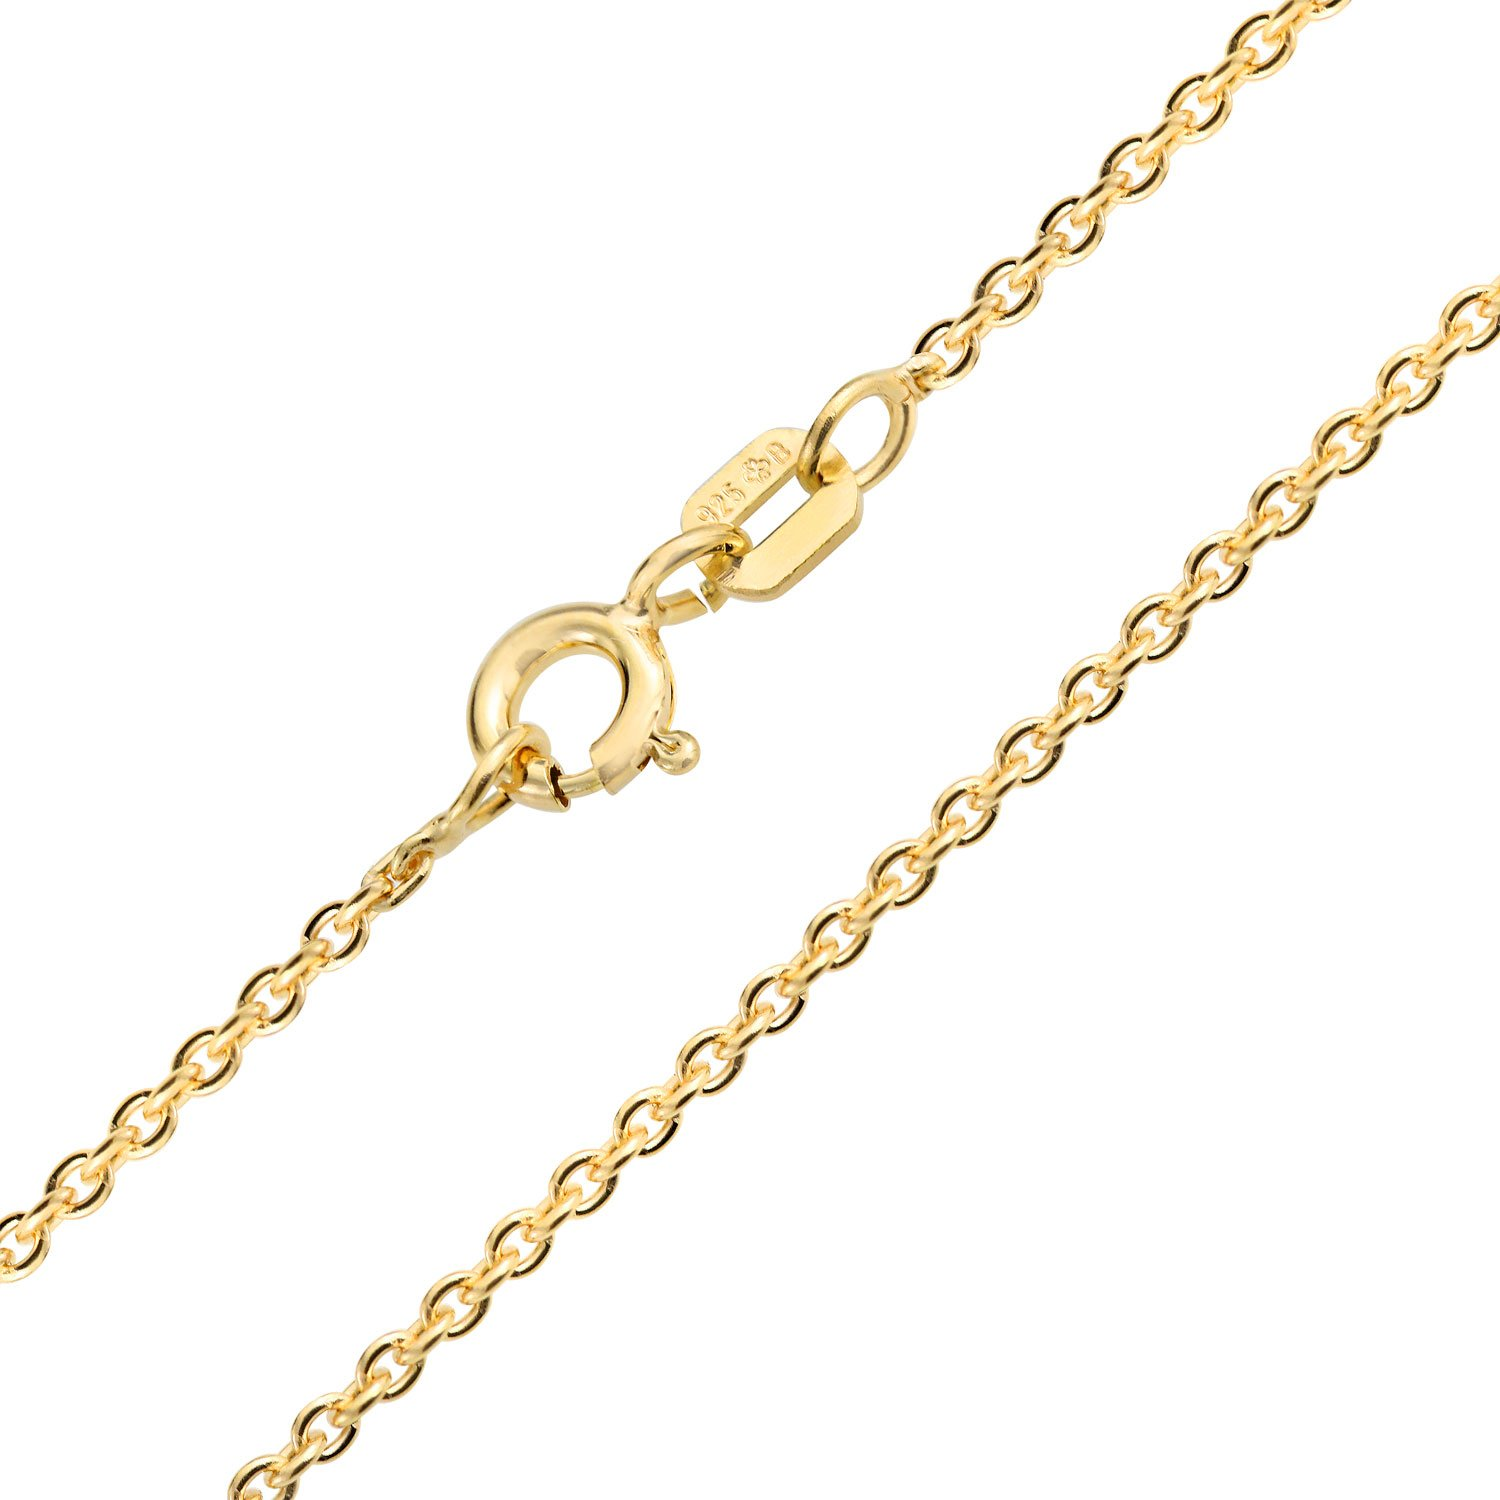 Bling Jewelry Round Link Rolo Chain Gold Plated Necklace SSTR-RL40-G-16